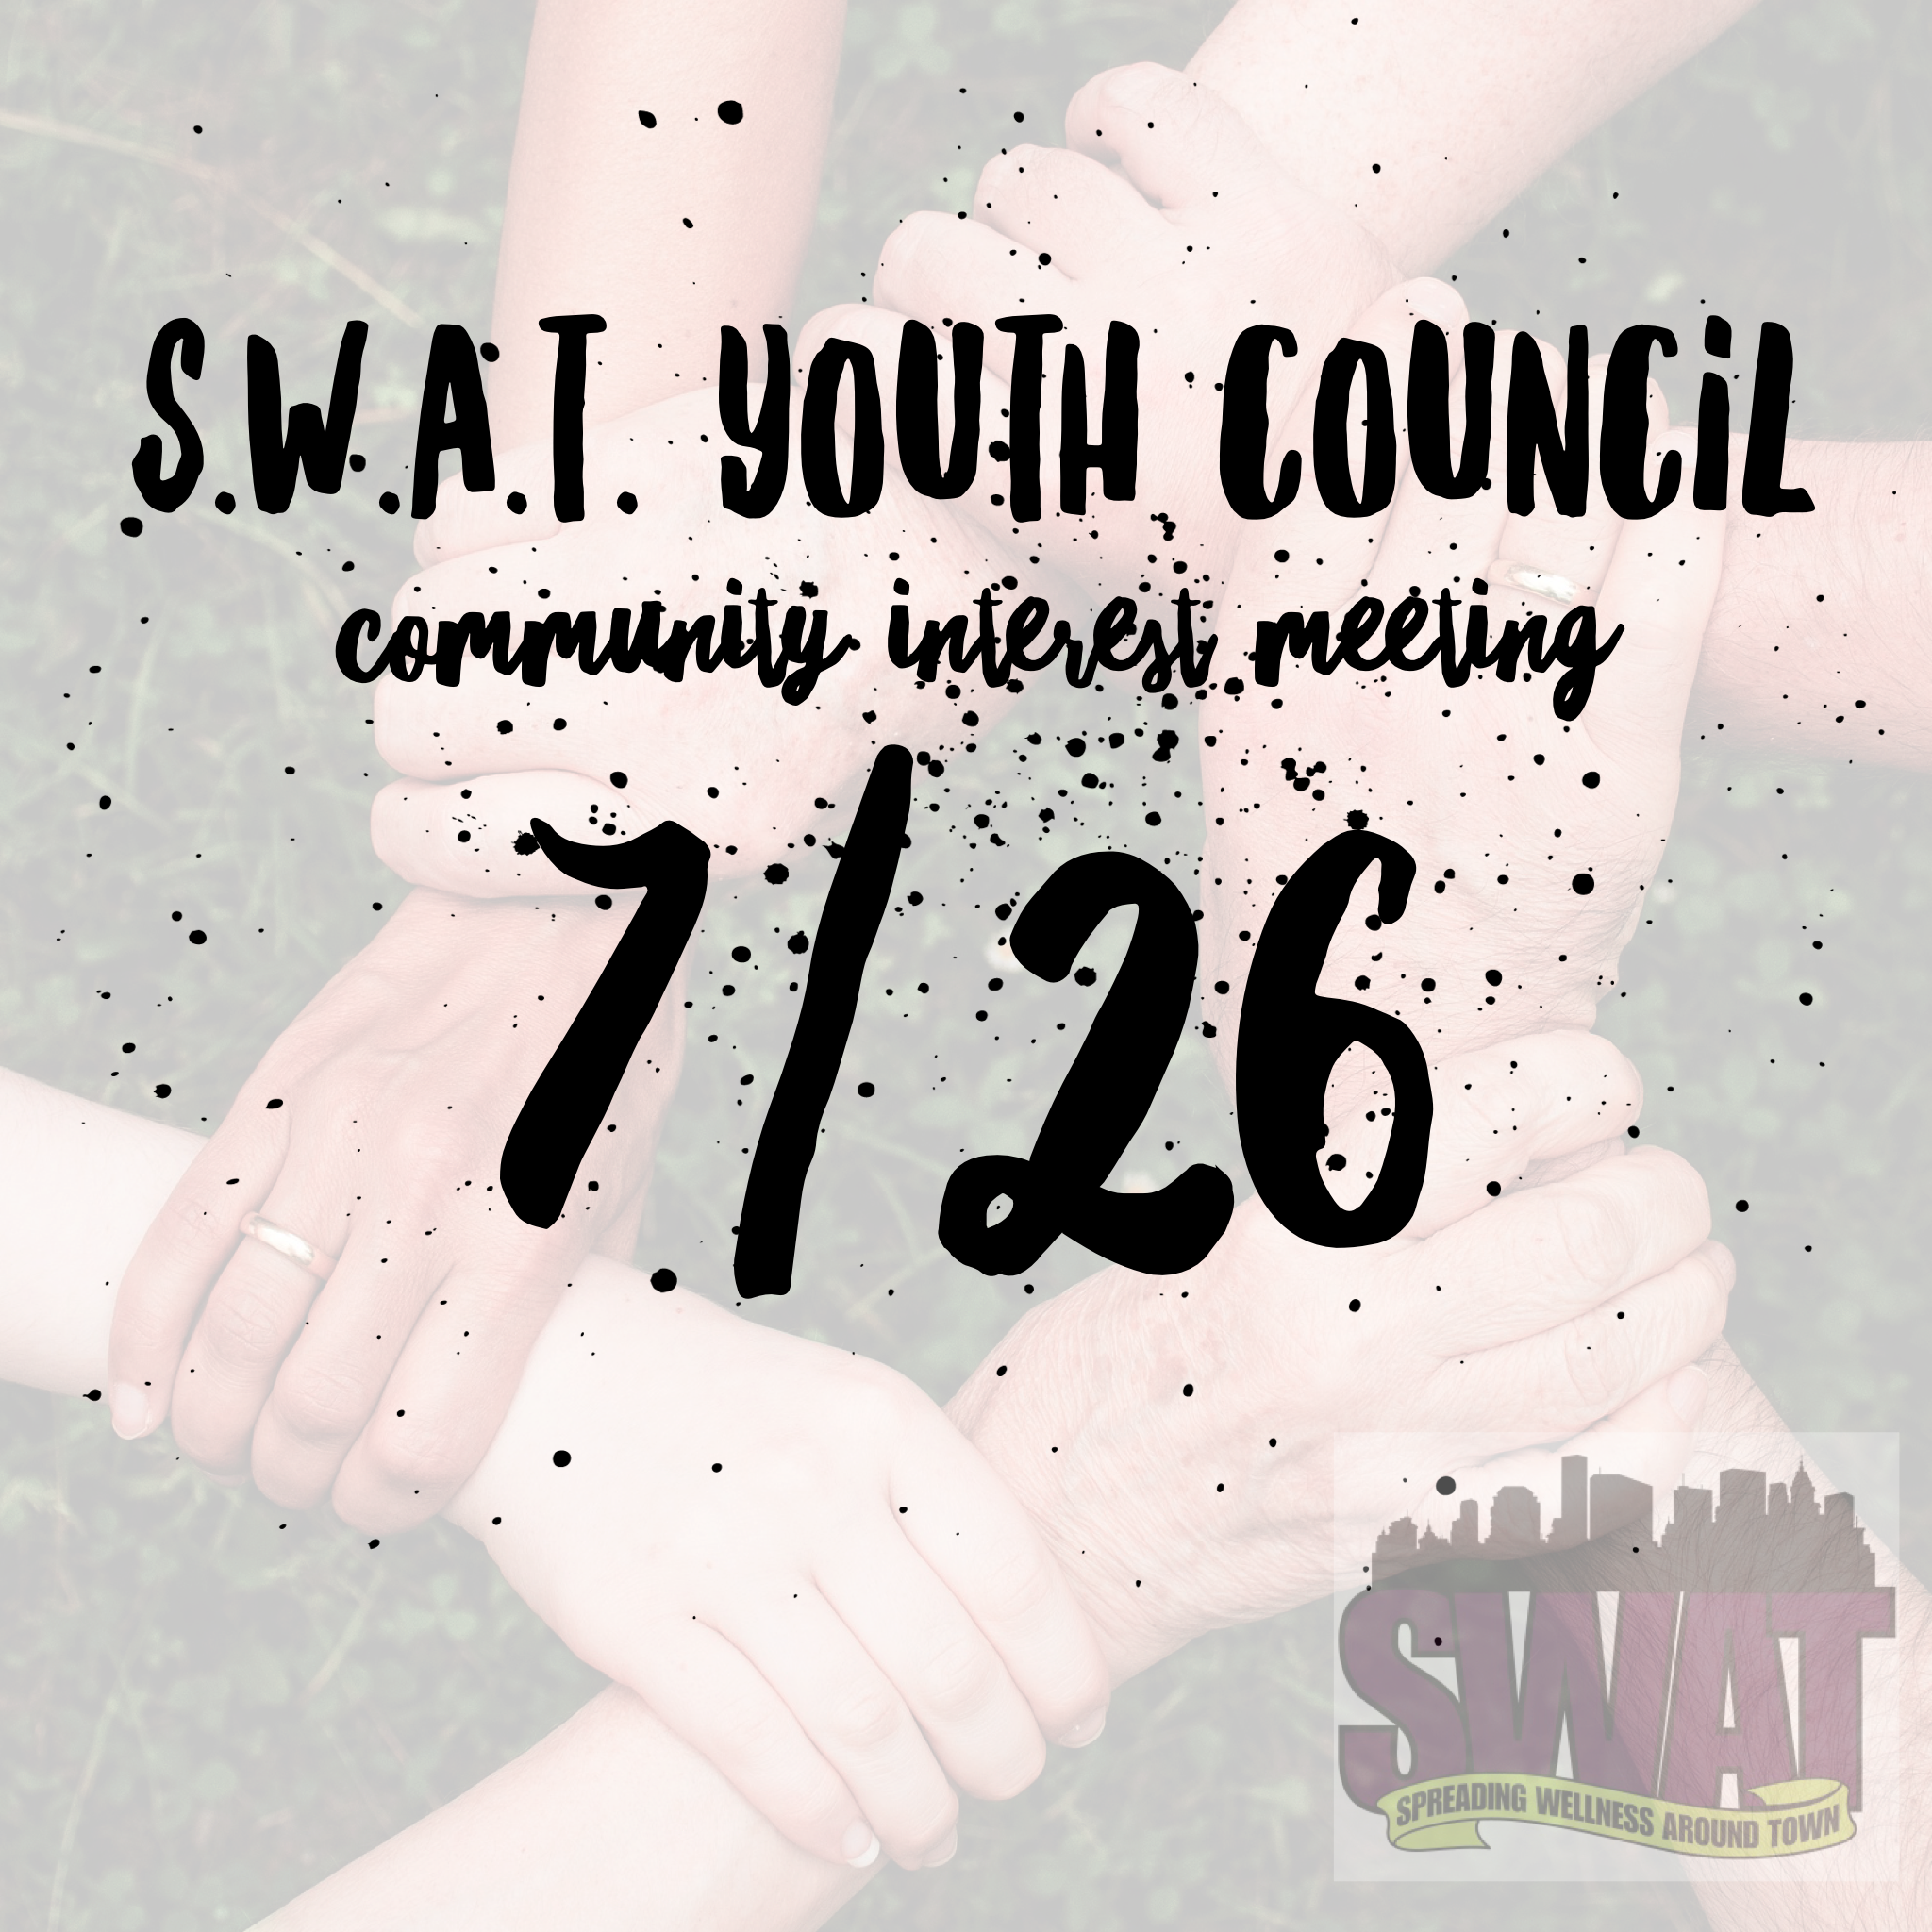 S.W.A.T Youth Council Community Interest Meet